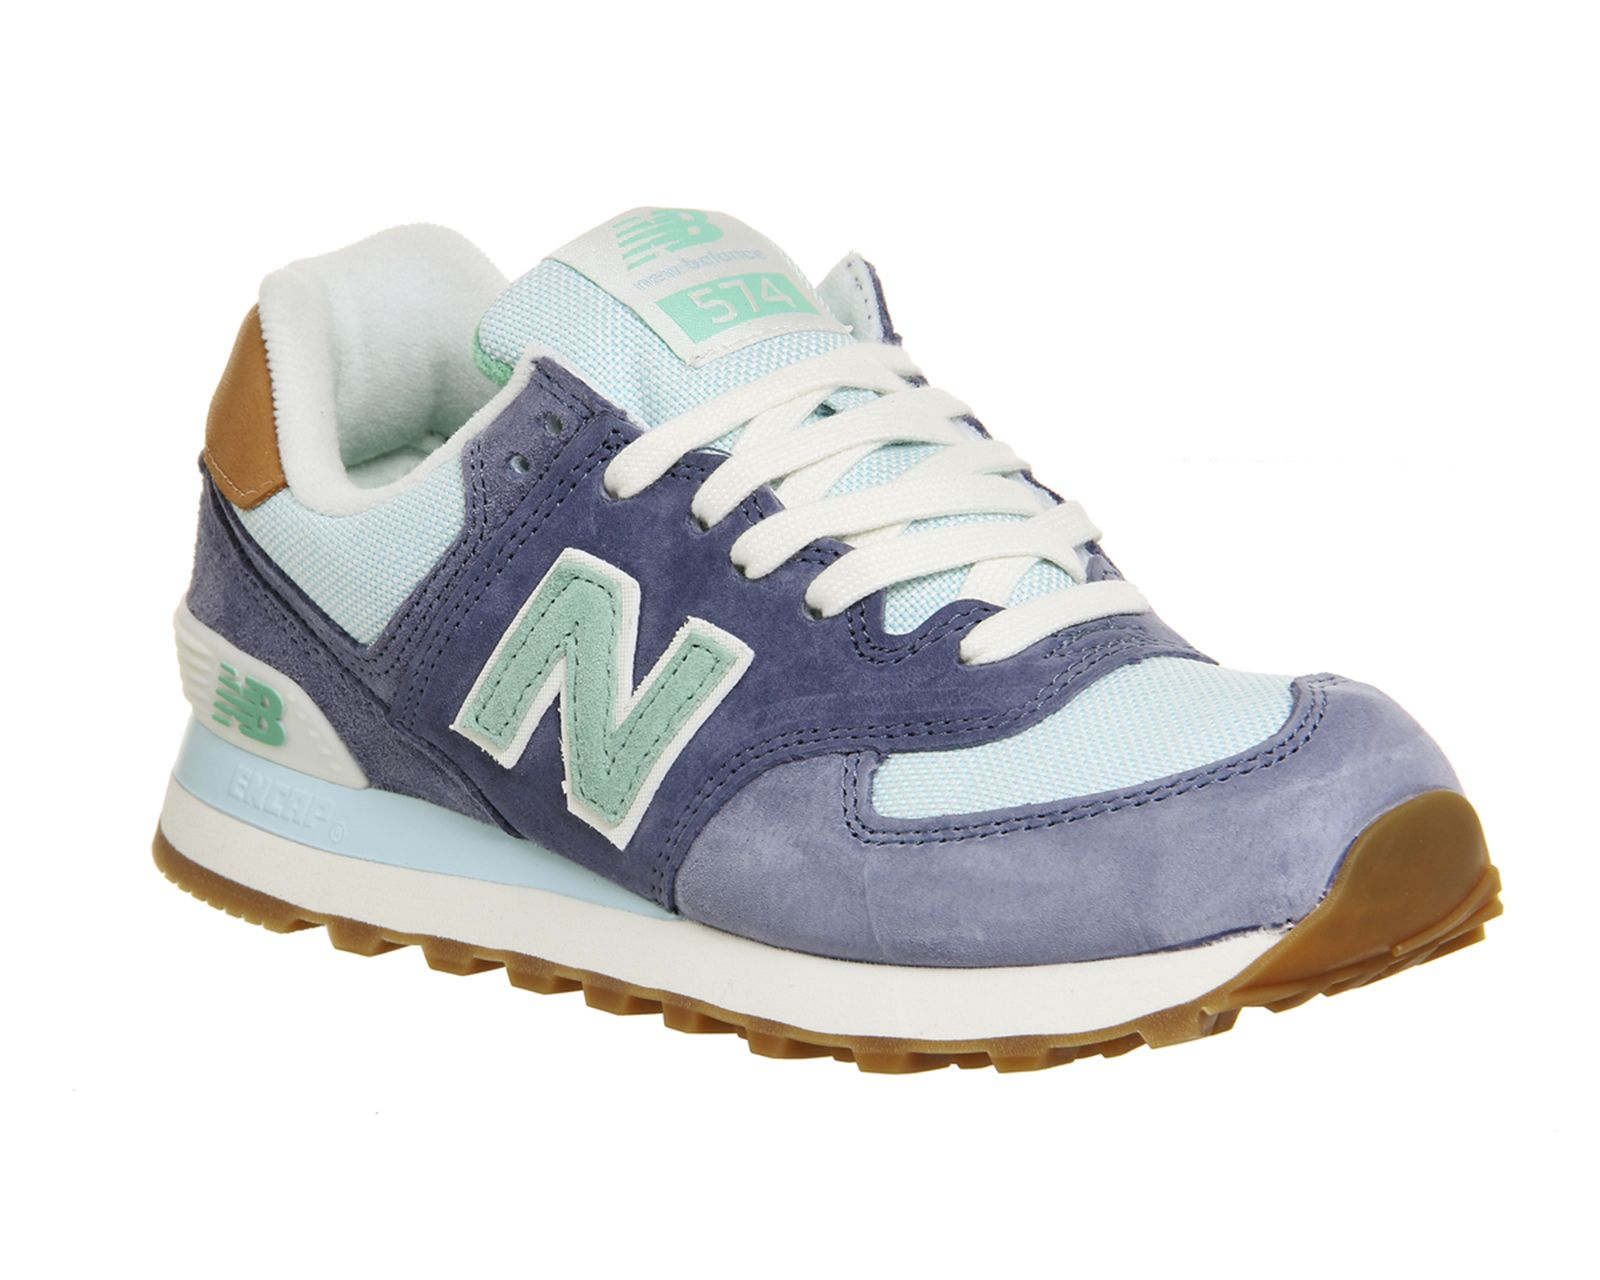 size 40 b19c7 99ea1 Buy Blue Teal Beach Cruiser Exclusive New Balance Wl574 from ...